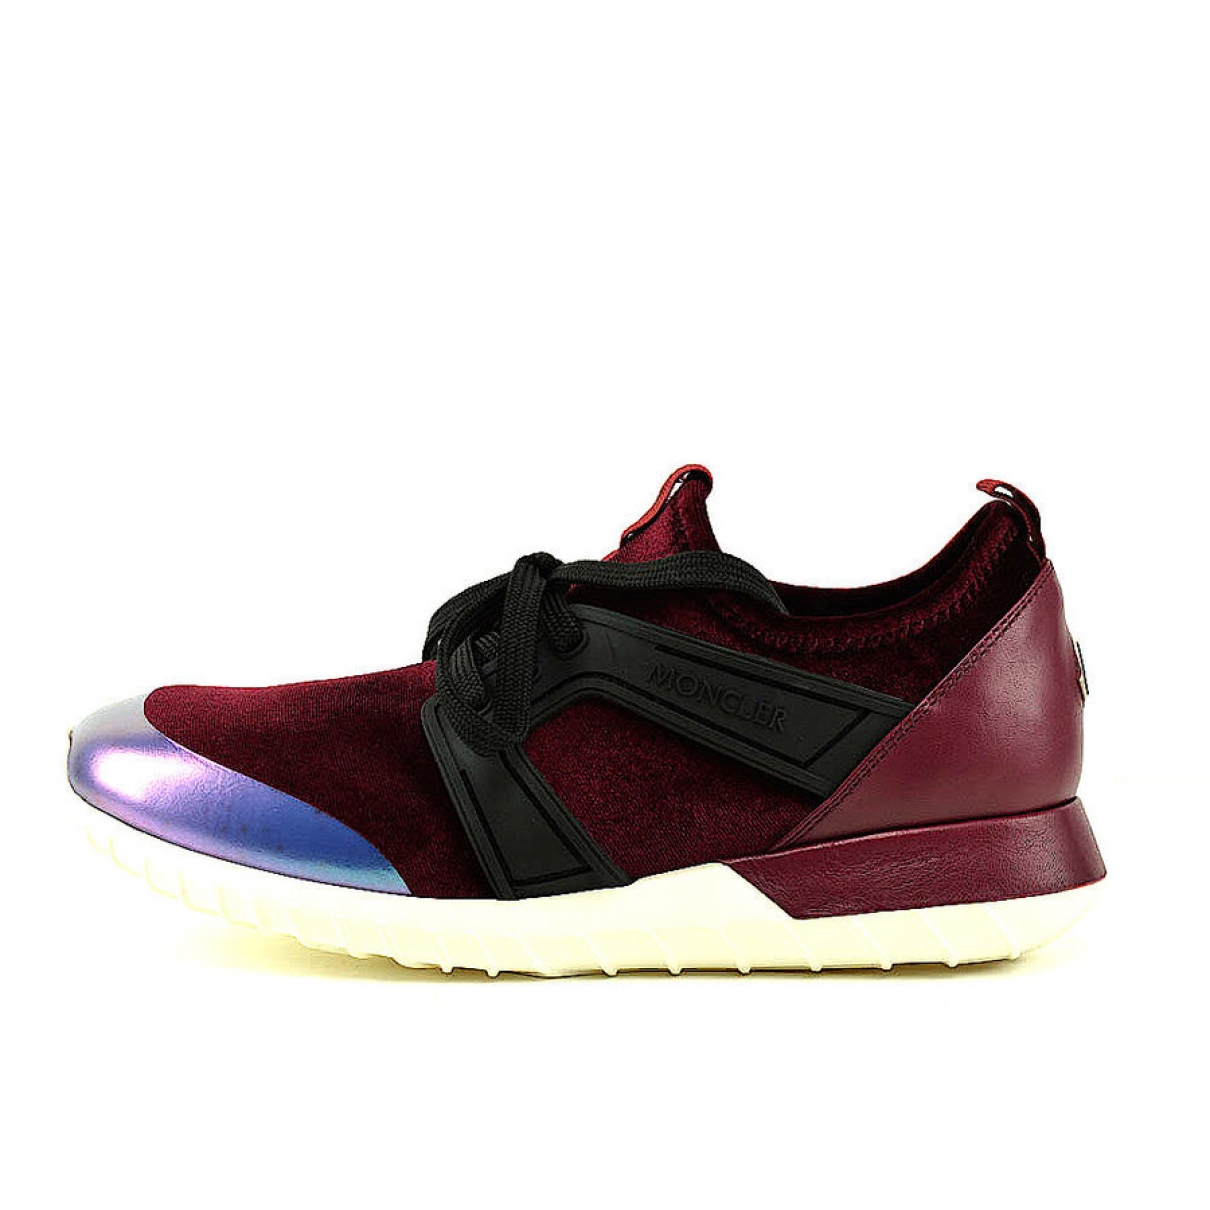 Moncler \N Burgundy Leather Trainers for Women 40 EU